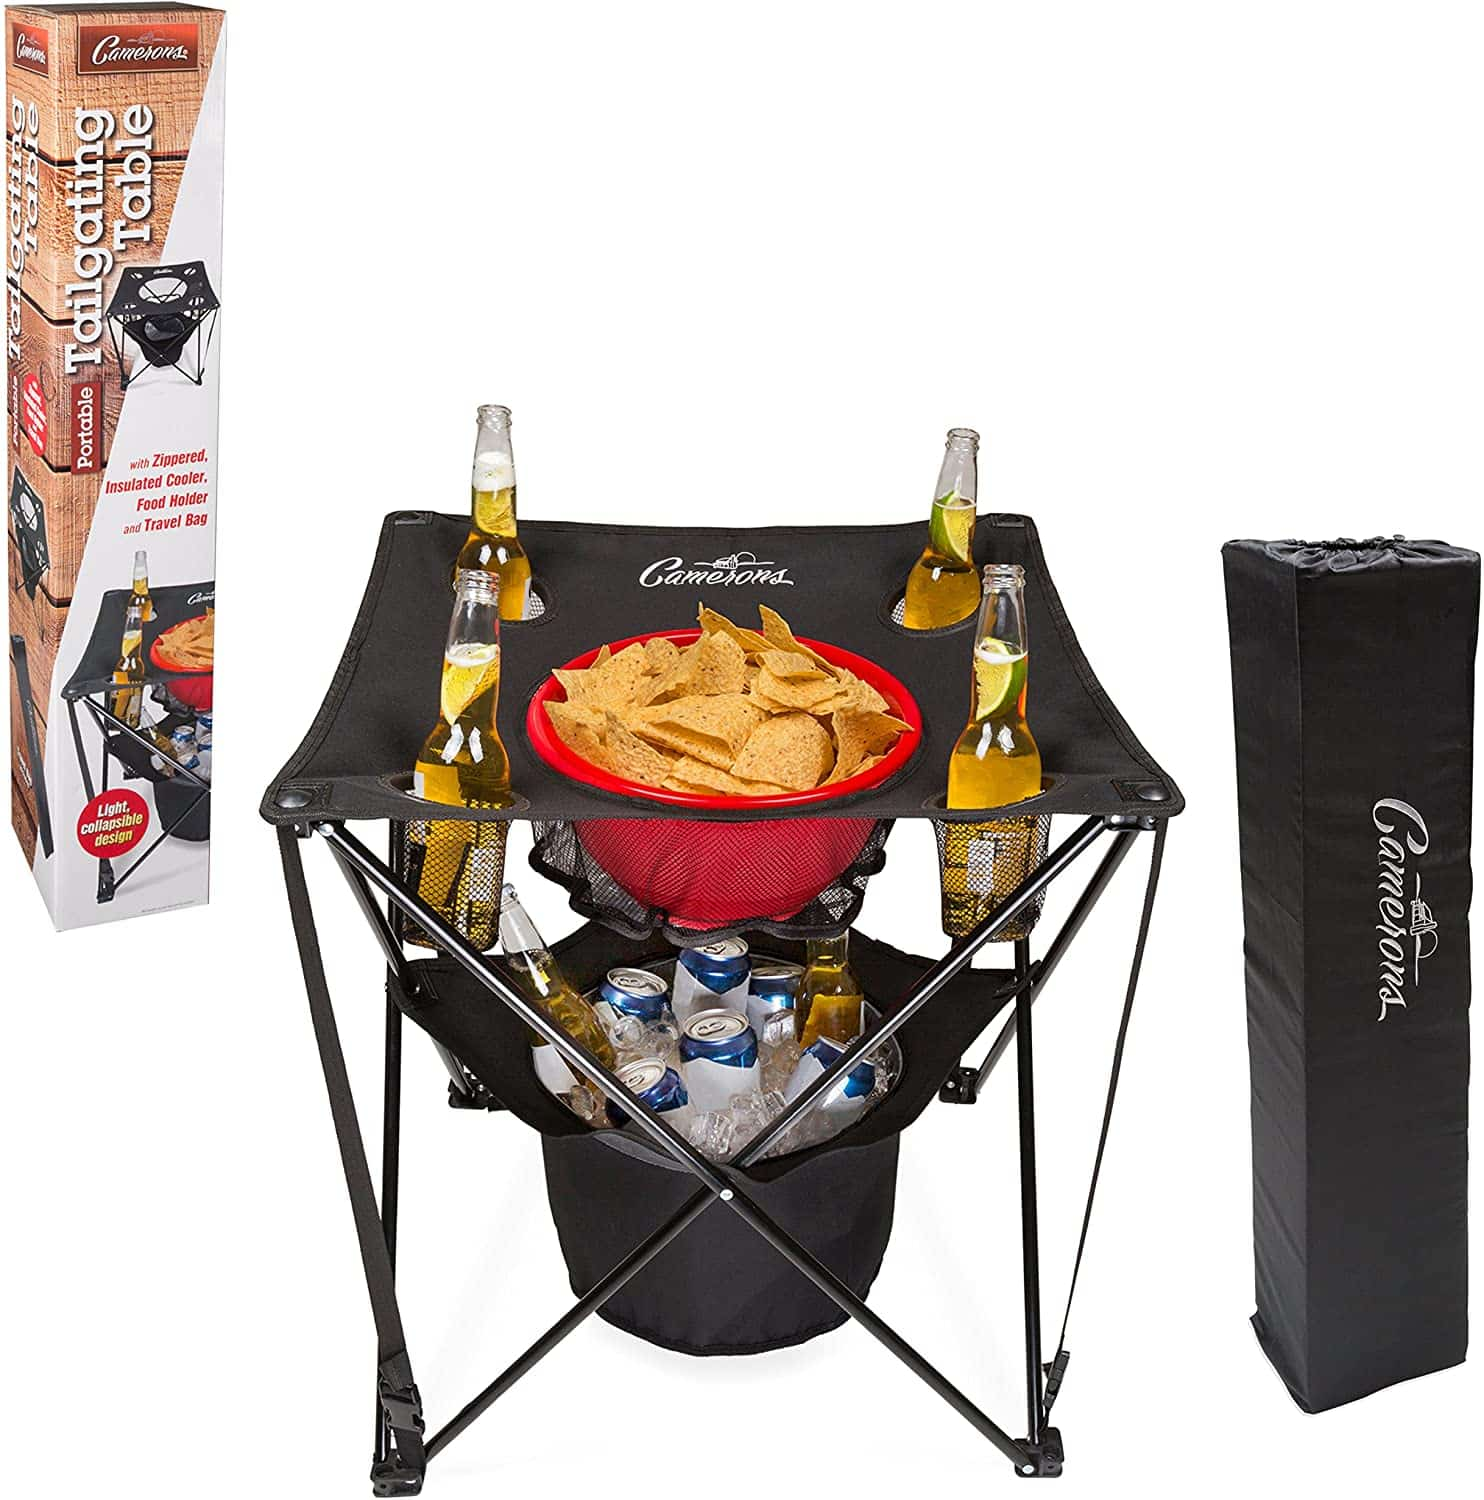 Camerons Products Tailgating Cooler Table